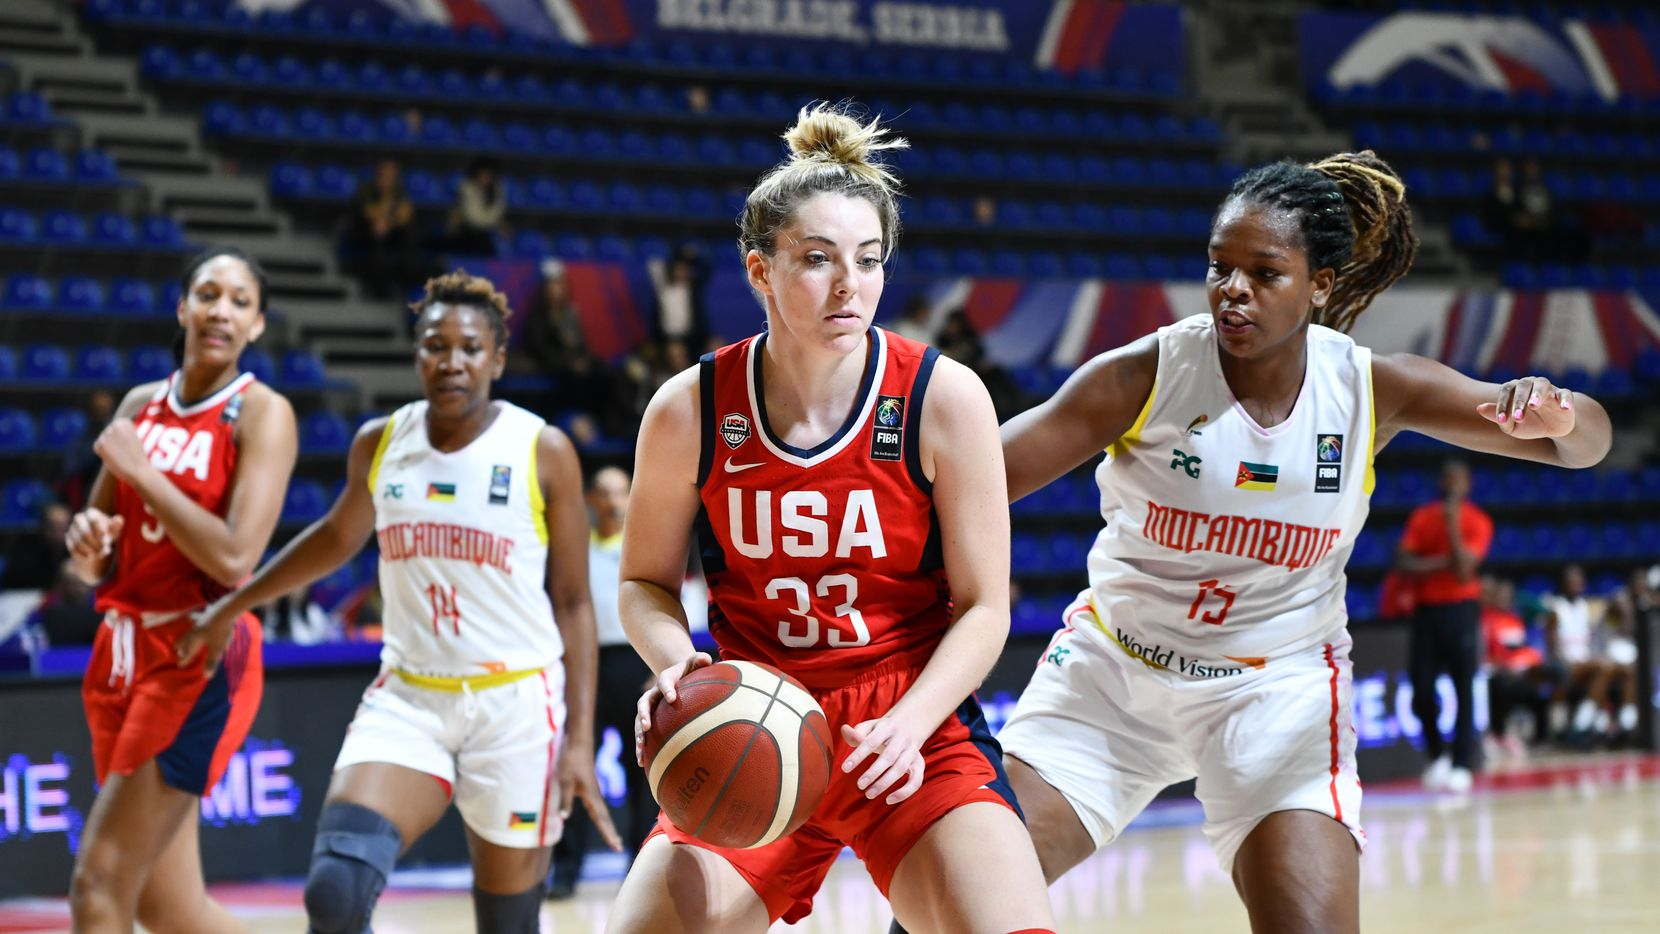 BELGRADE, SERBIA - FEBRUARY 08: Katie Lou Samuelson (L) of USA in action againast Deolinda Gimo (R) of Mozambique  during the FIBA Women's Olympic Qualifying Tournament 2020 Group A match between Mozambique and USA at Aleksandar Nikolic Hall on February 8, 2020 in Belgrade, Serbia. (Photo by Srdjan Stevanovic/Getty Images)